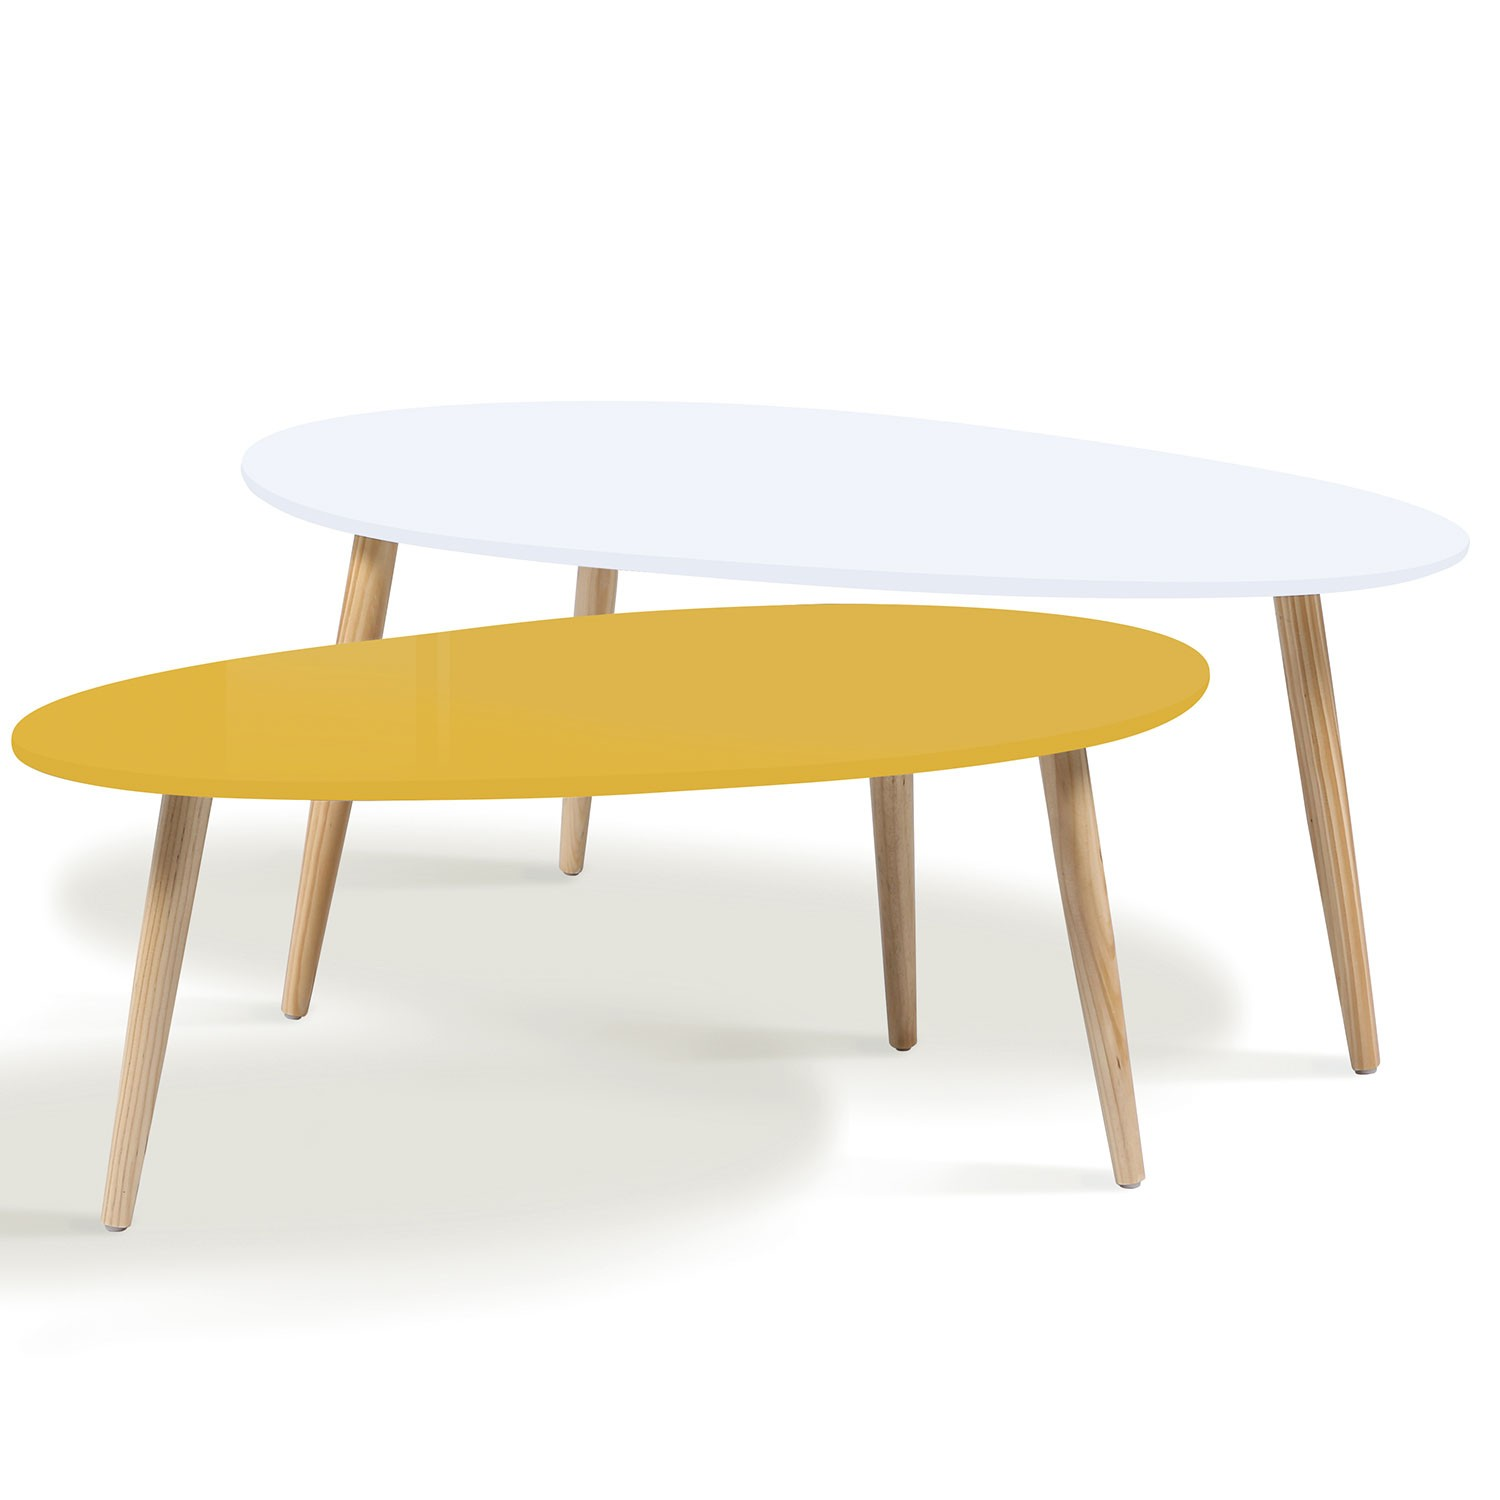 Table Salon Gigogne Lot De 2 Tables Basses Gigognes Laquées Jaune Blanc Scandinave Idm